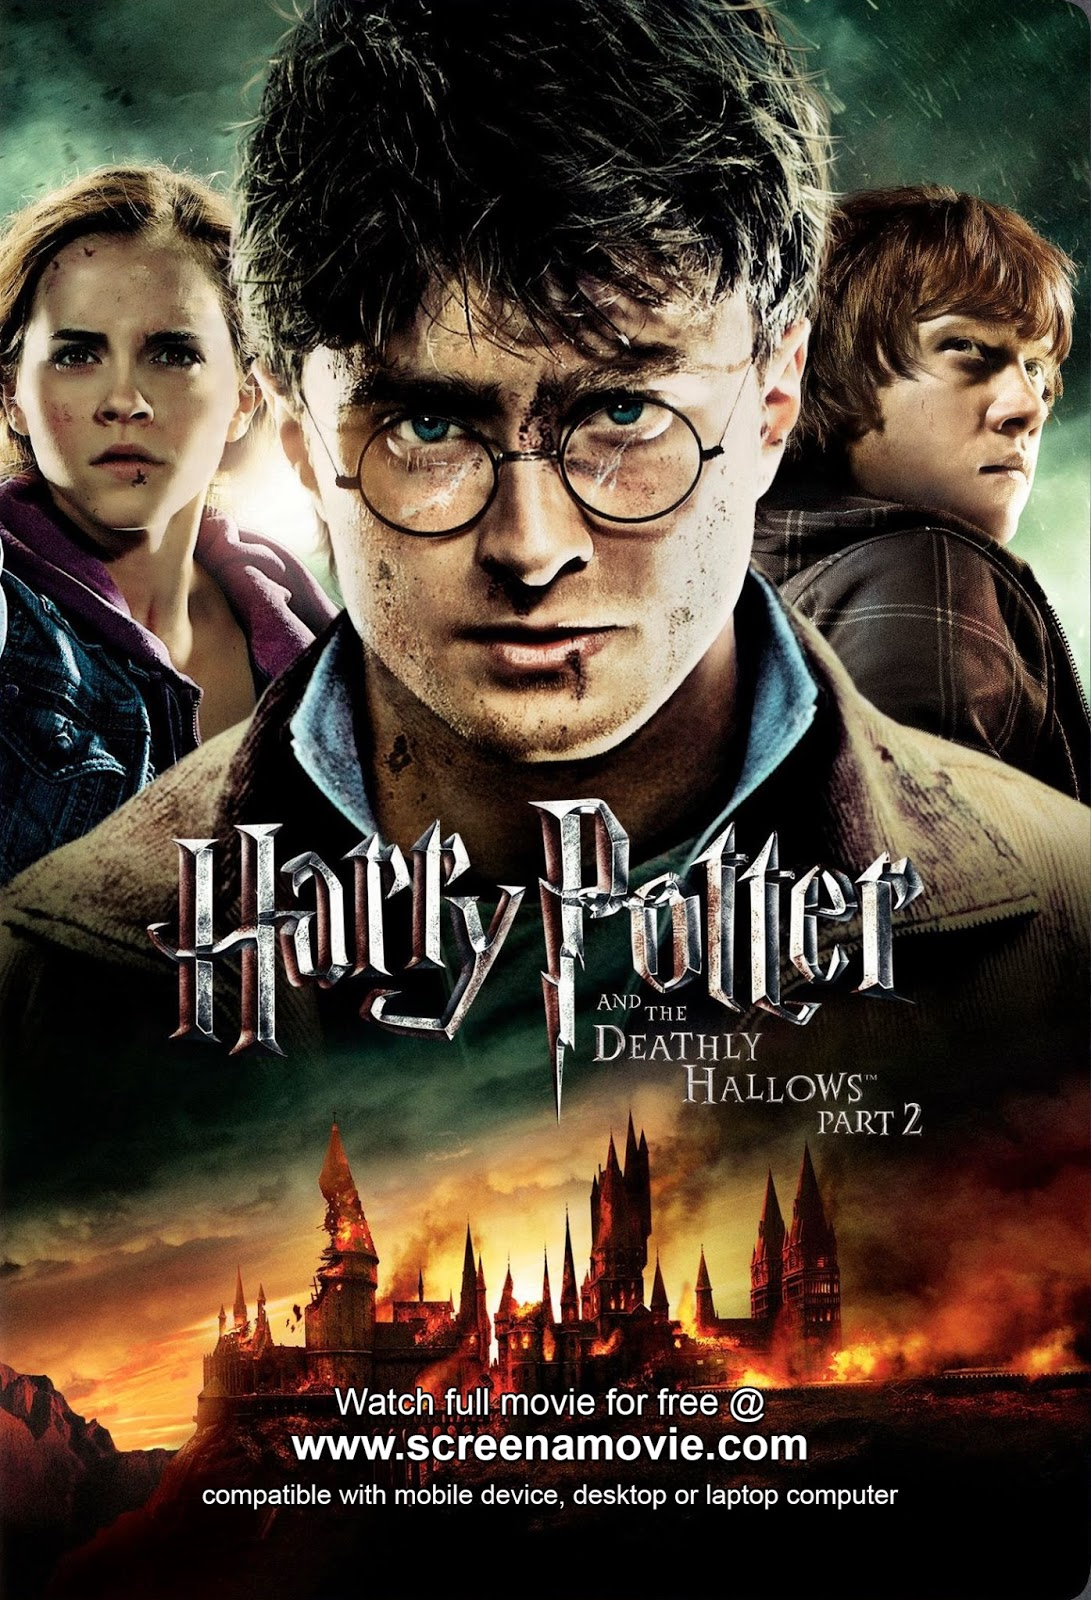 Harry Potter and the Deathly Hallows: Part 2 [Full Movie] # ...